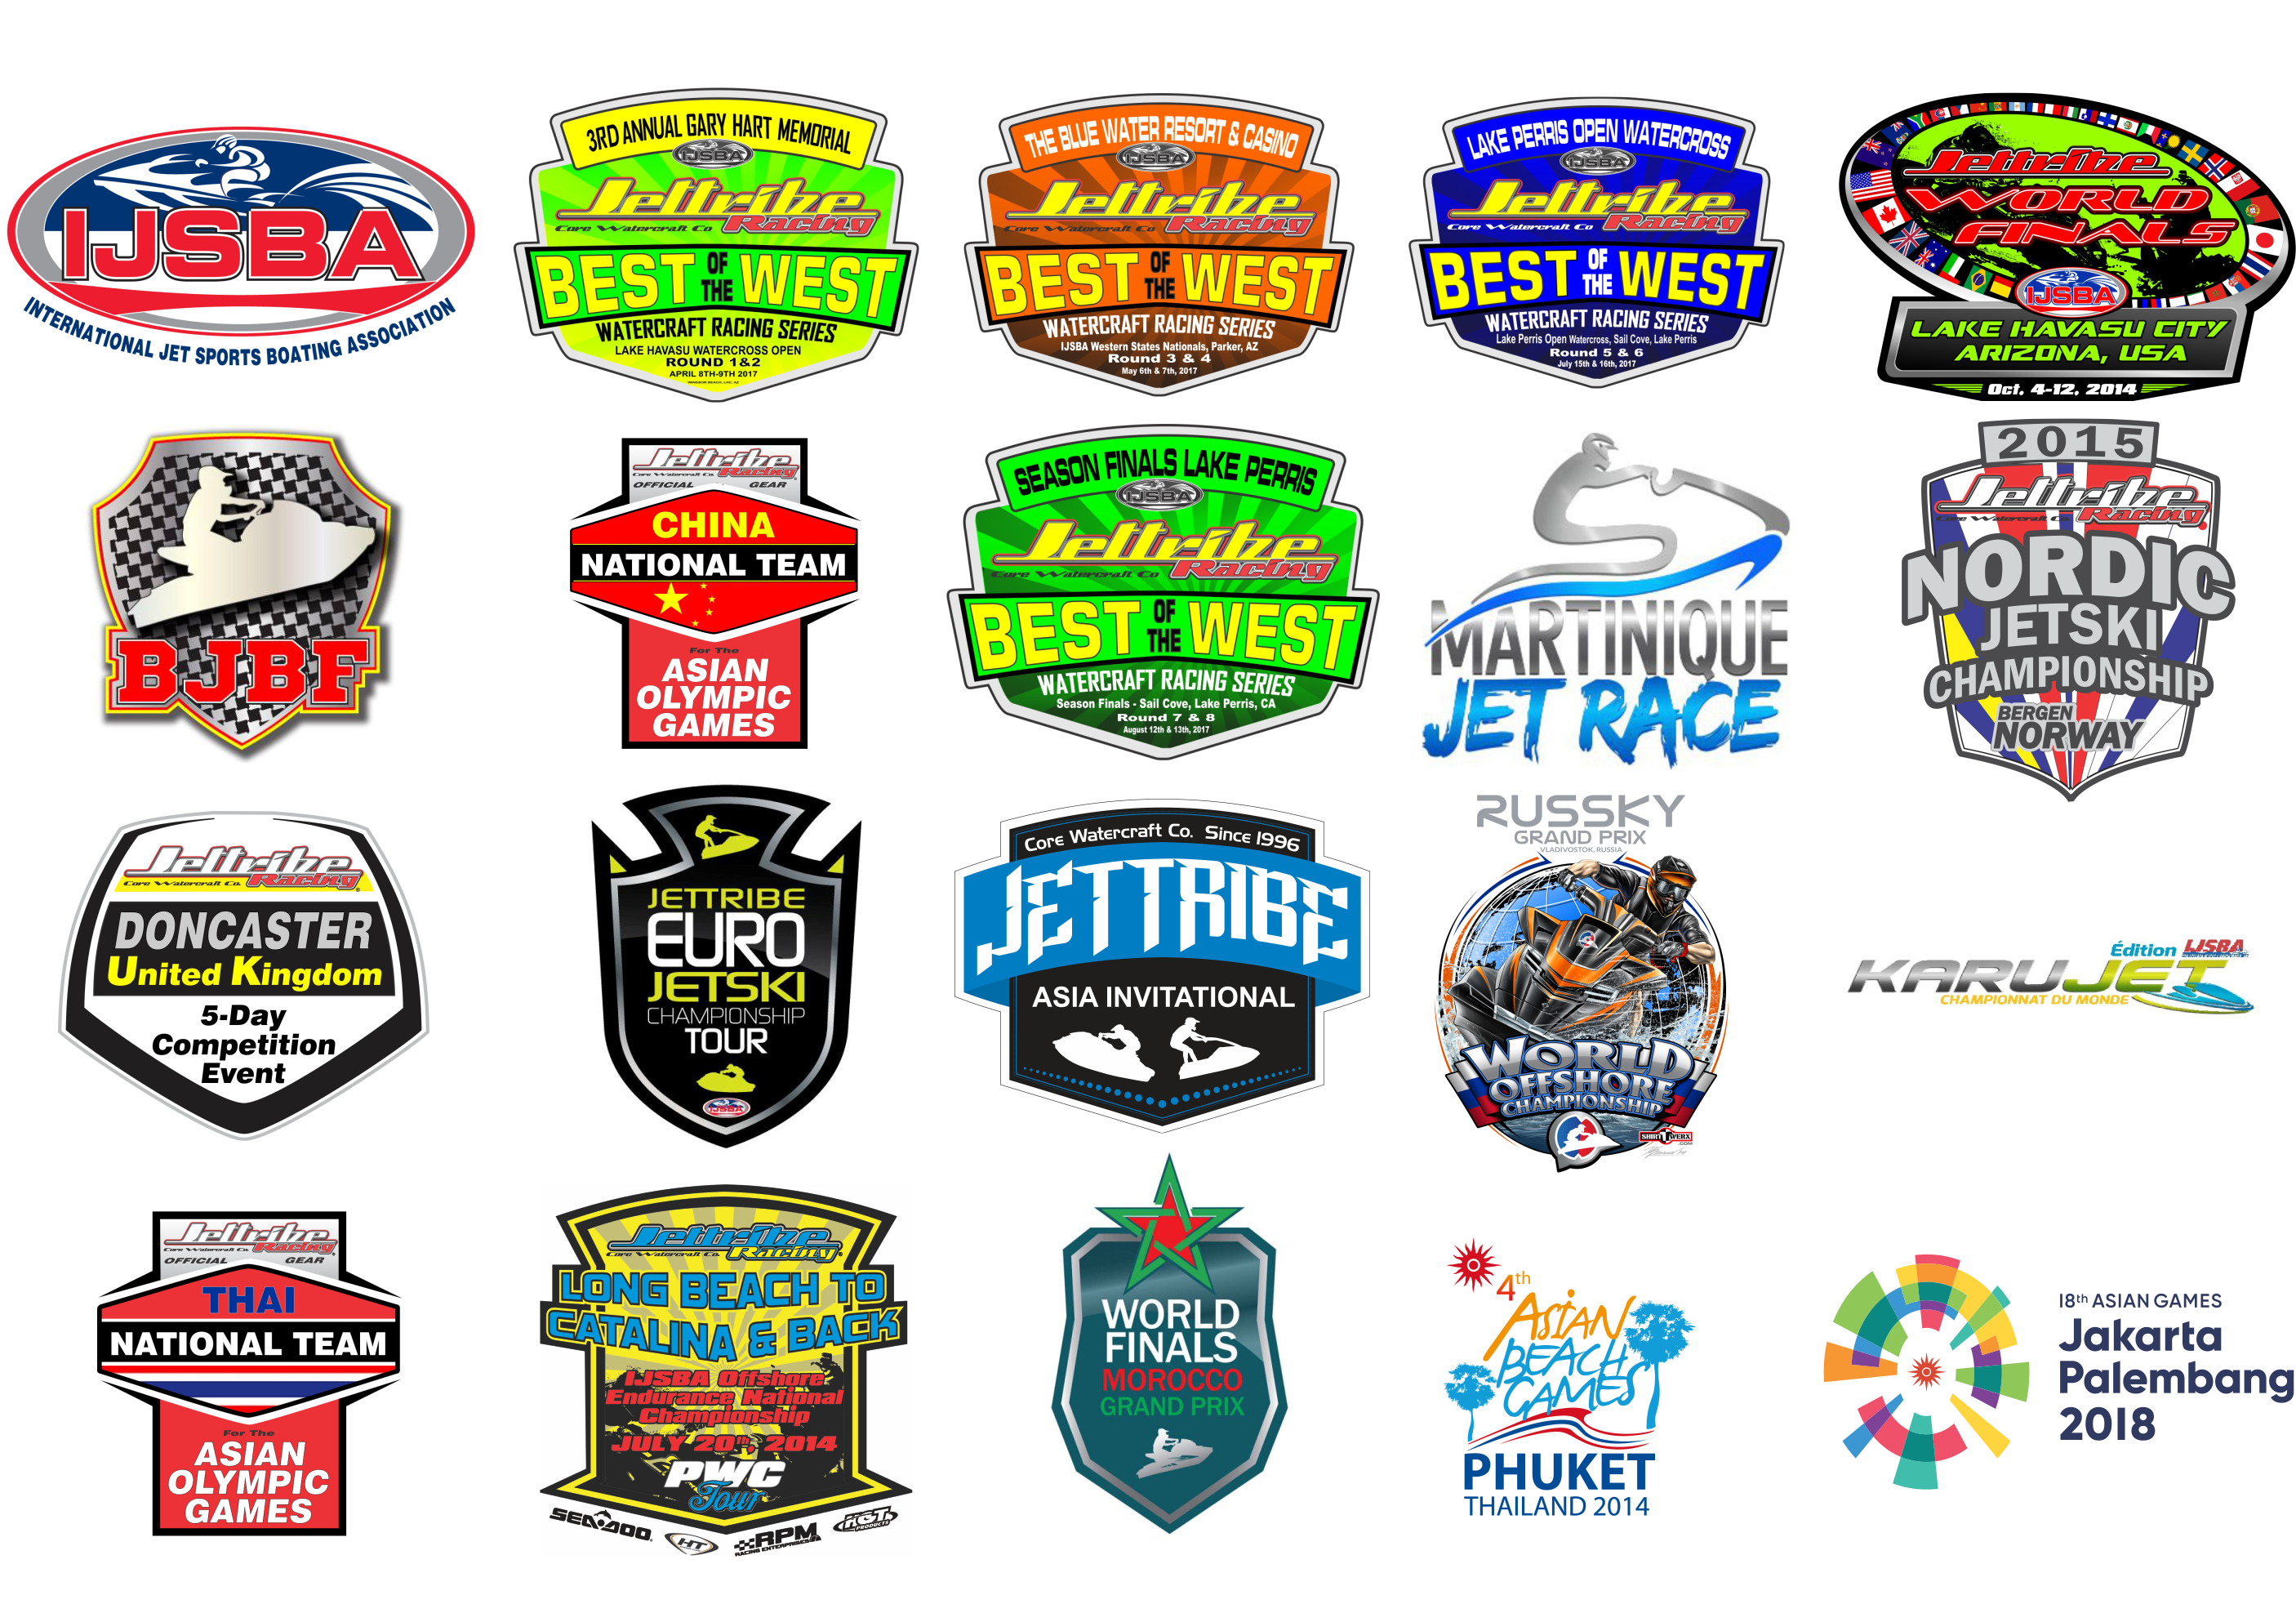 event-logos2.png